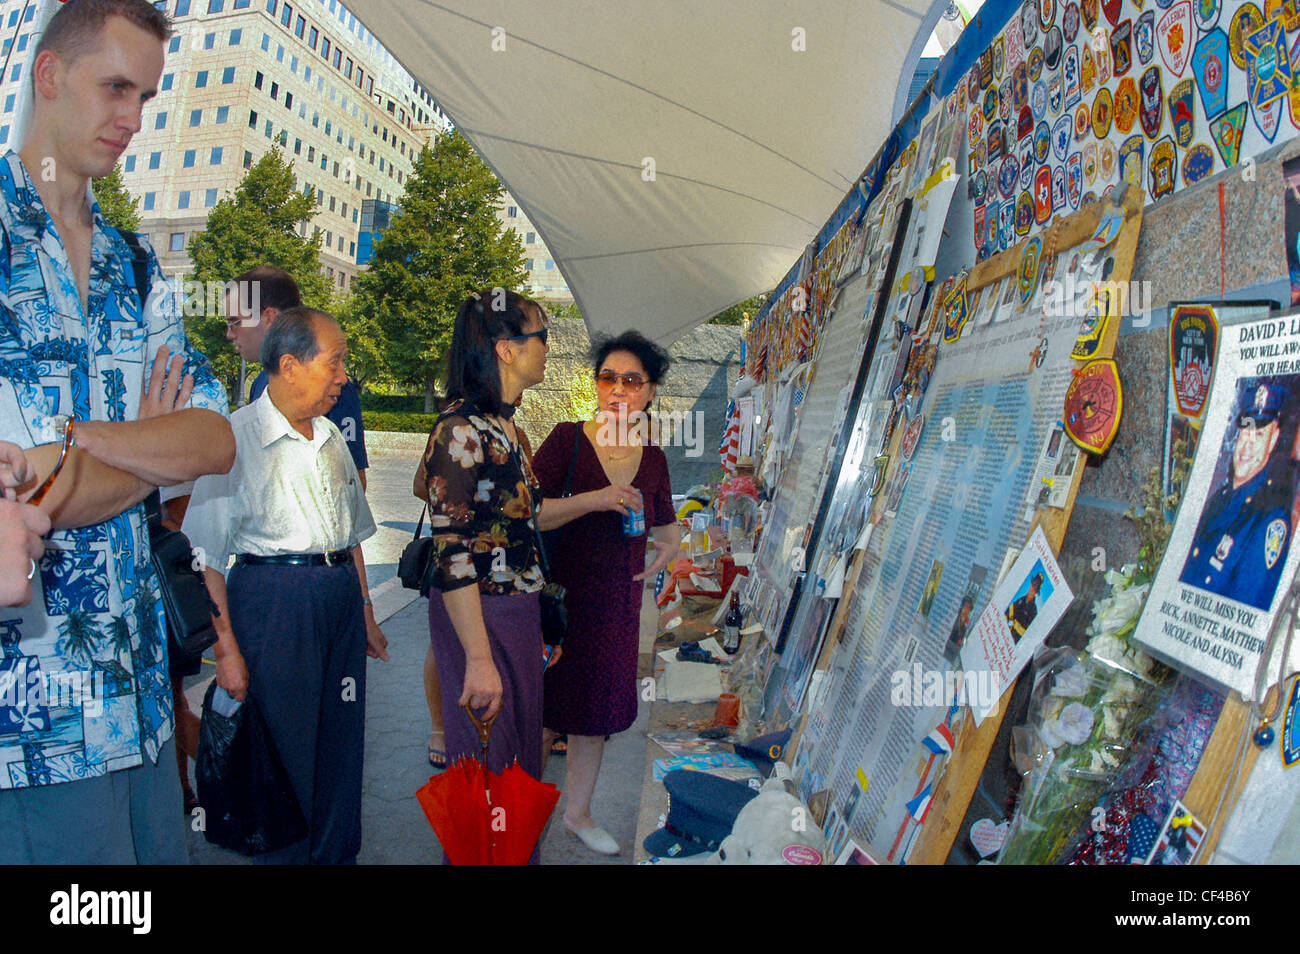 NEW YORK City, NY, USA, Tourists Paying Respect at Monument for 9/11 near ground Zero, Battery Park City - Stock Image